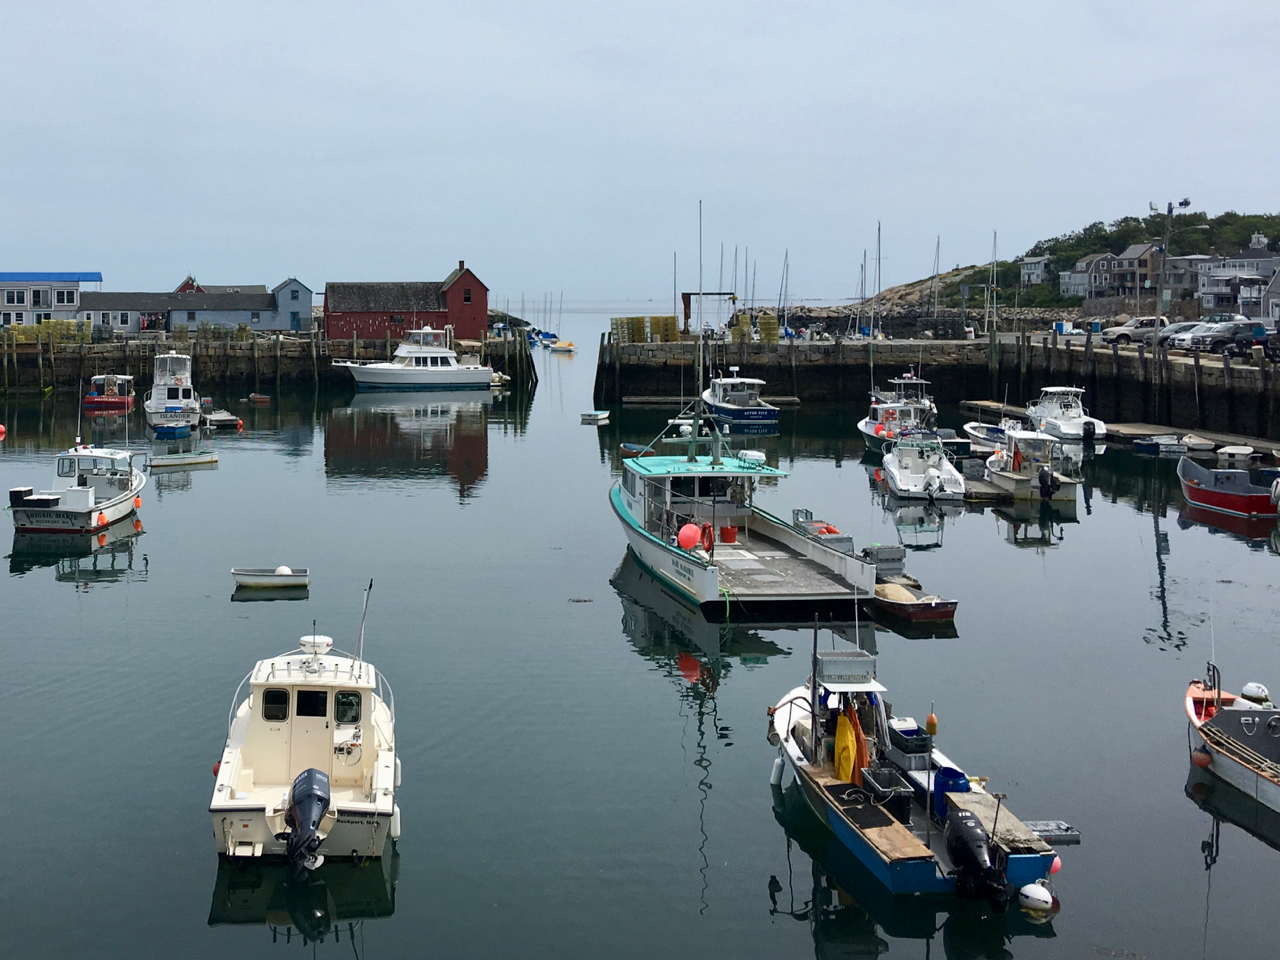 Rockport is a traditional seaside village on Cape Ann, Massachusetts.